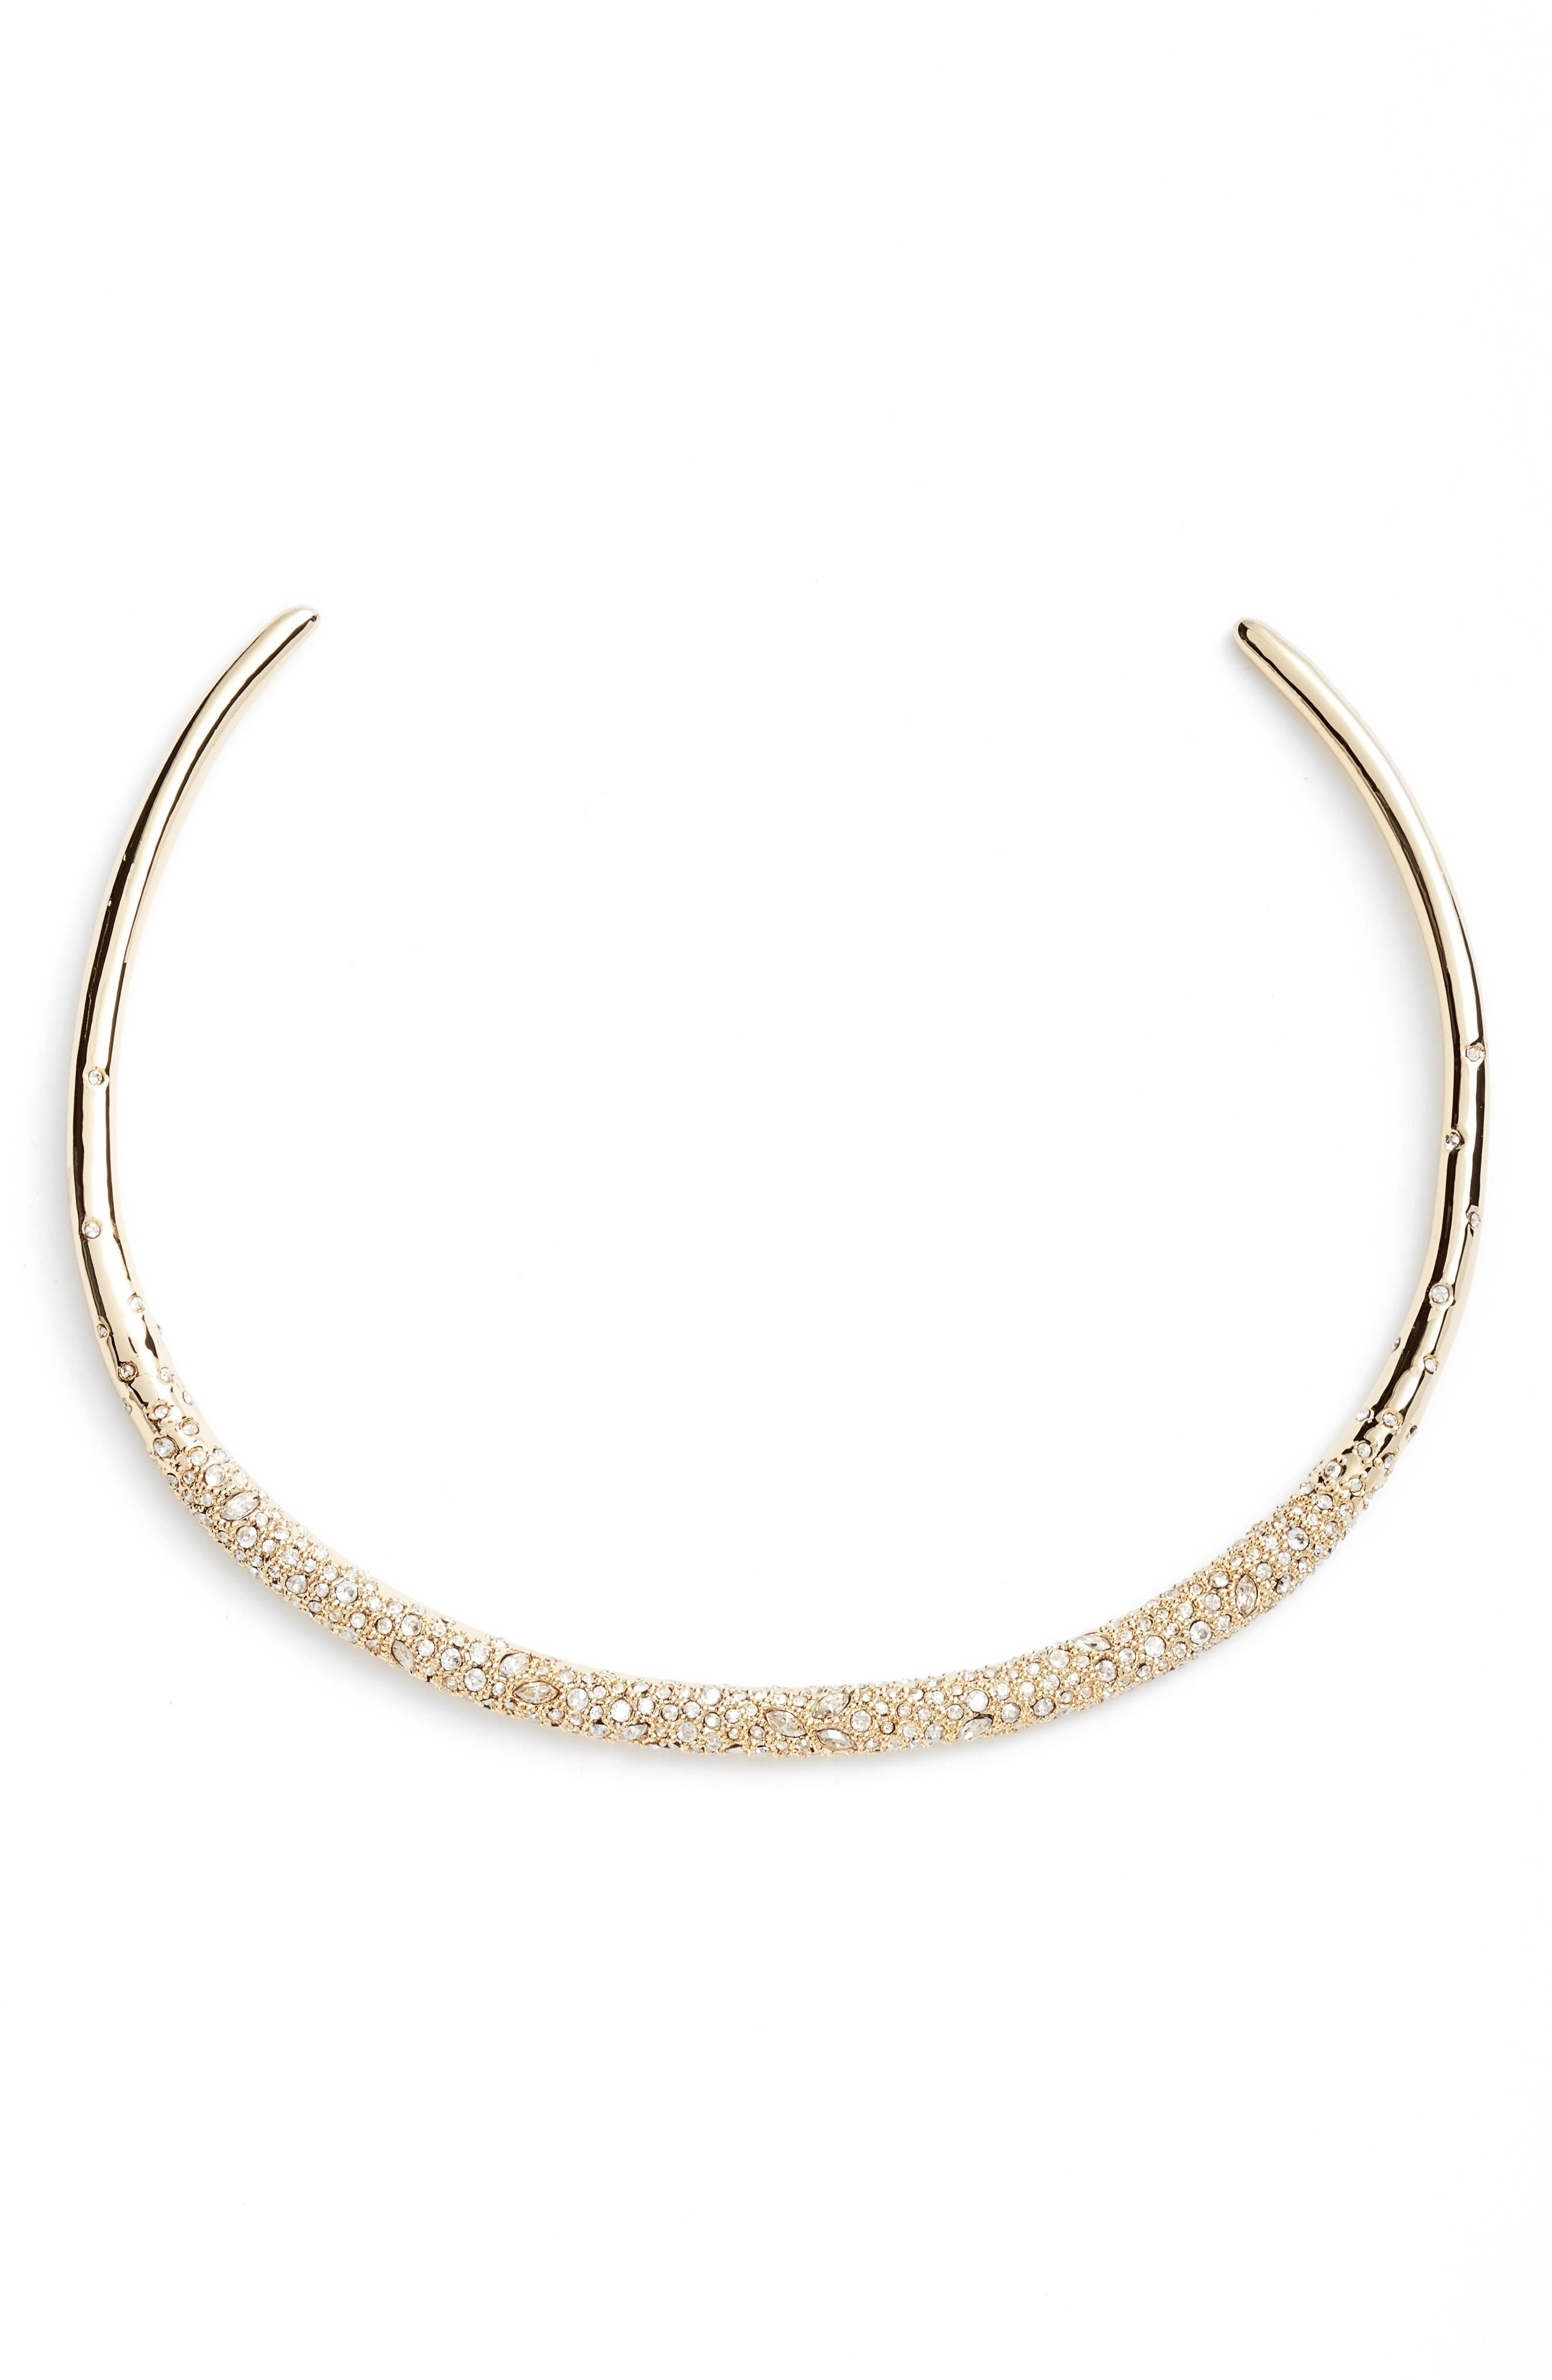 Thin Encrusted Collar Necklace,                             Main thumbnail 1, color,                             710